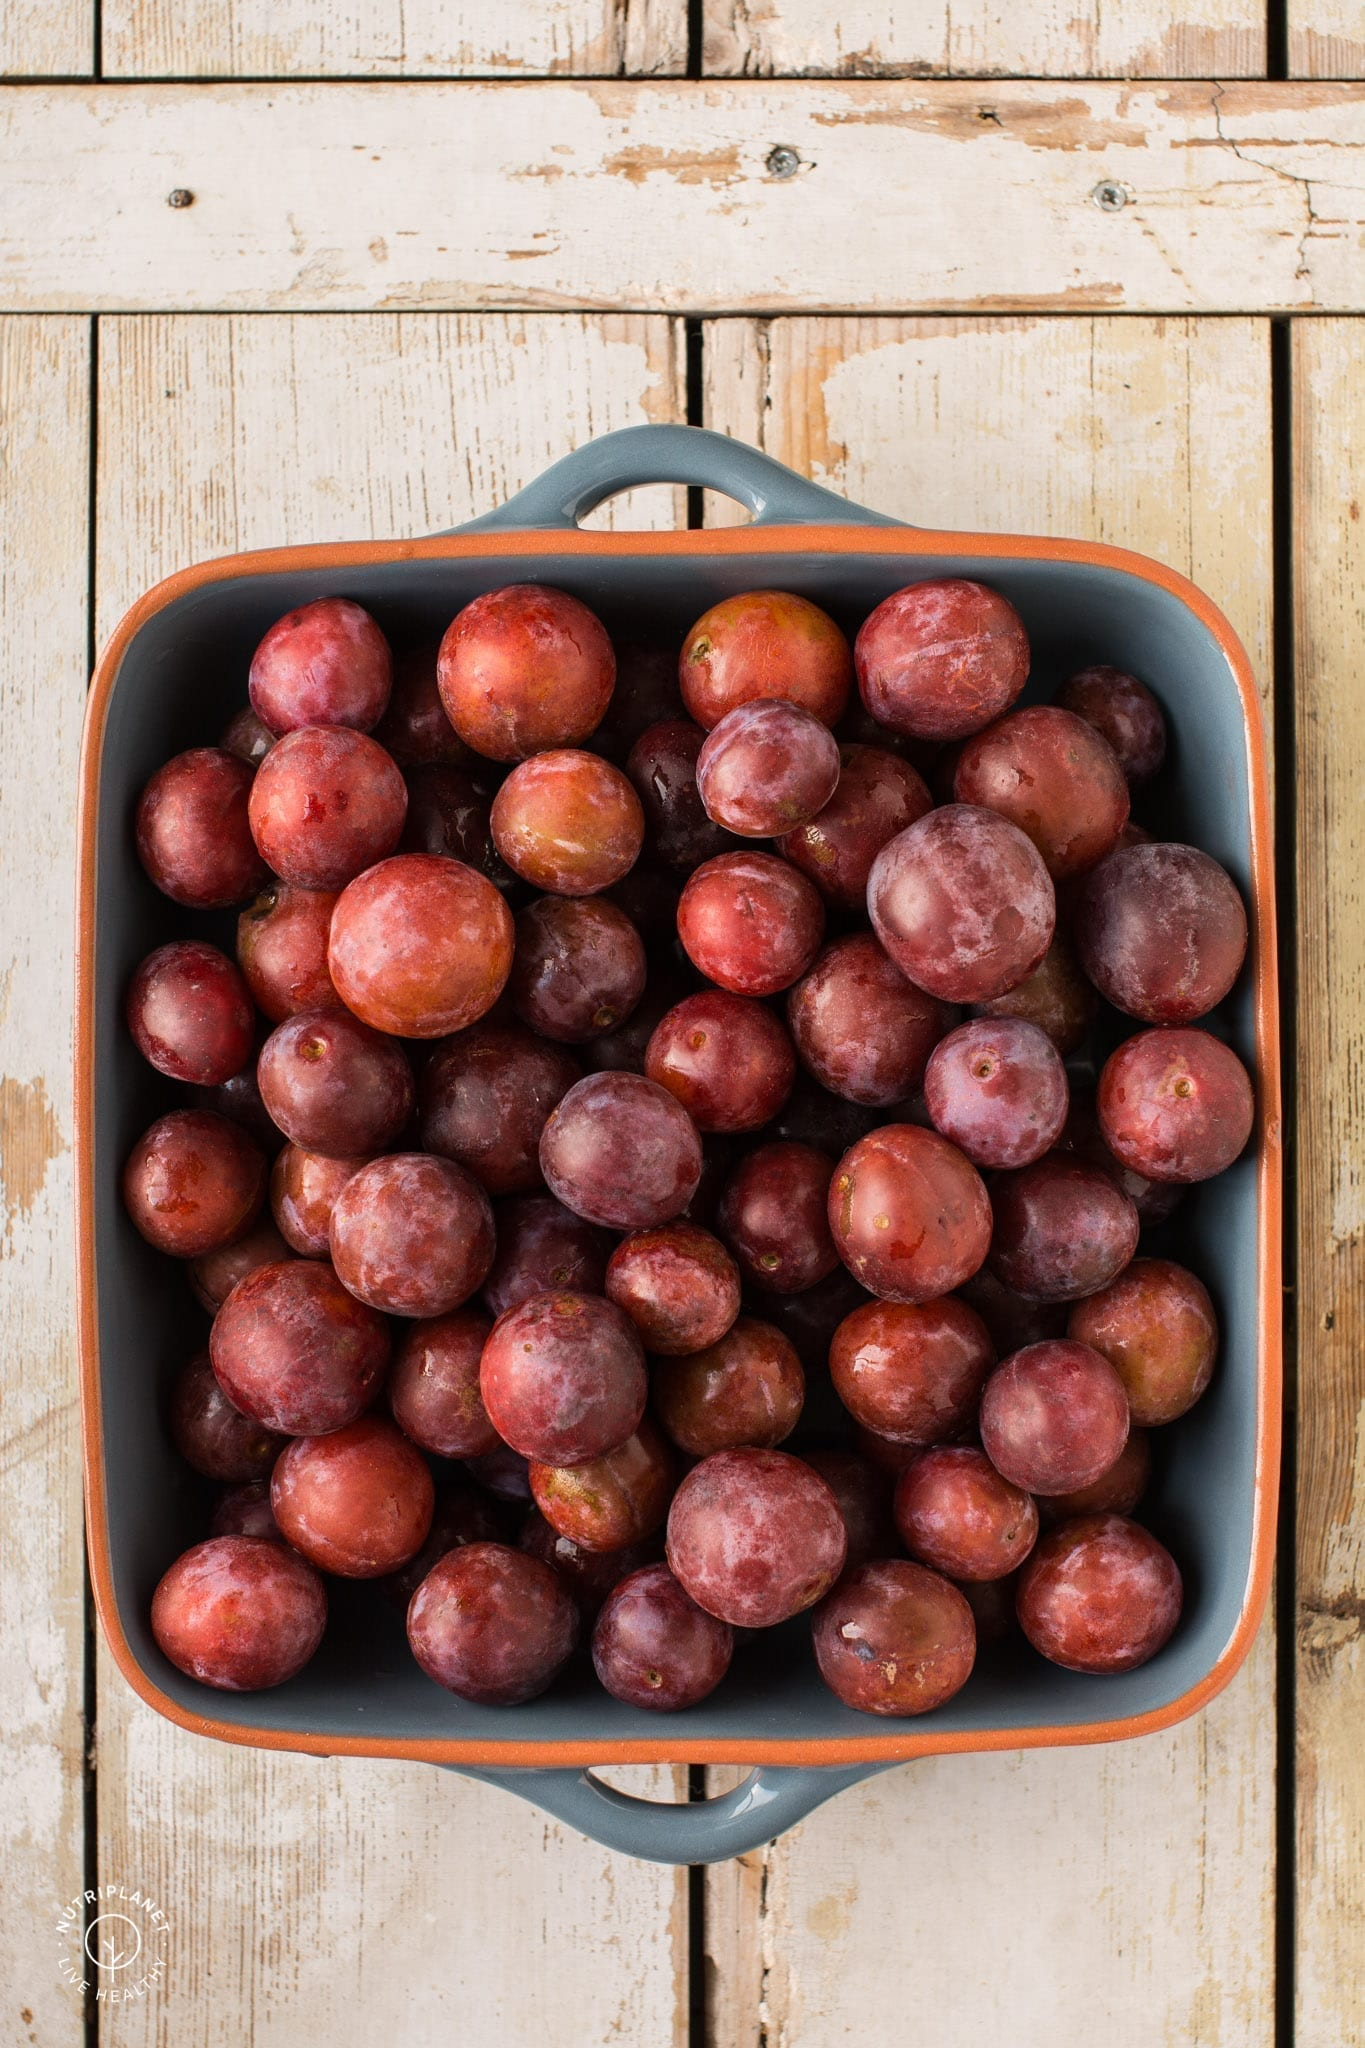 Spiced low-sugar plum jam for canning that will make a perfect spread for toast or topping for porridges, pancakes and waffles.